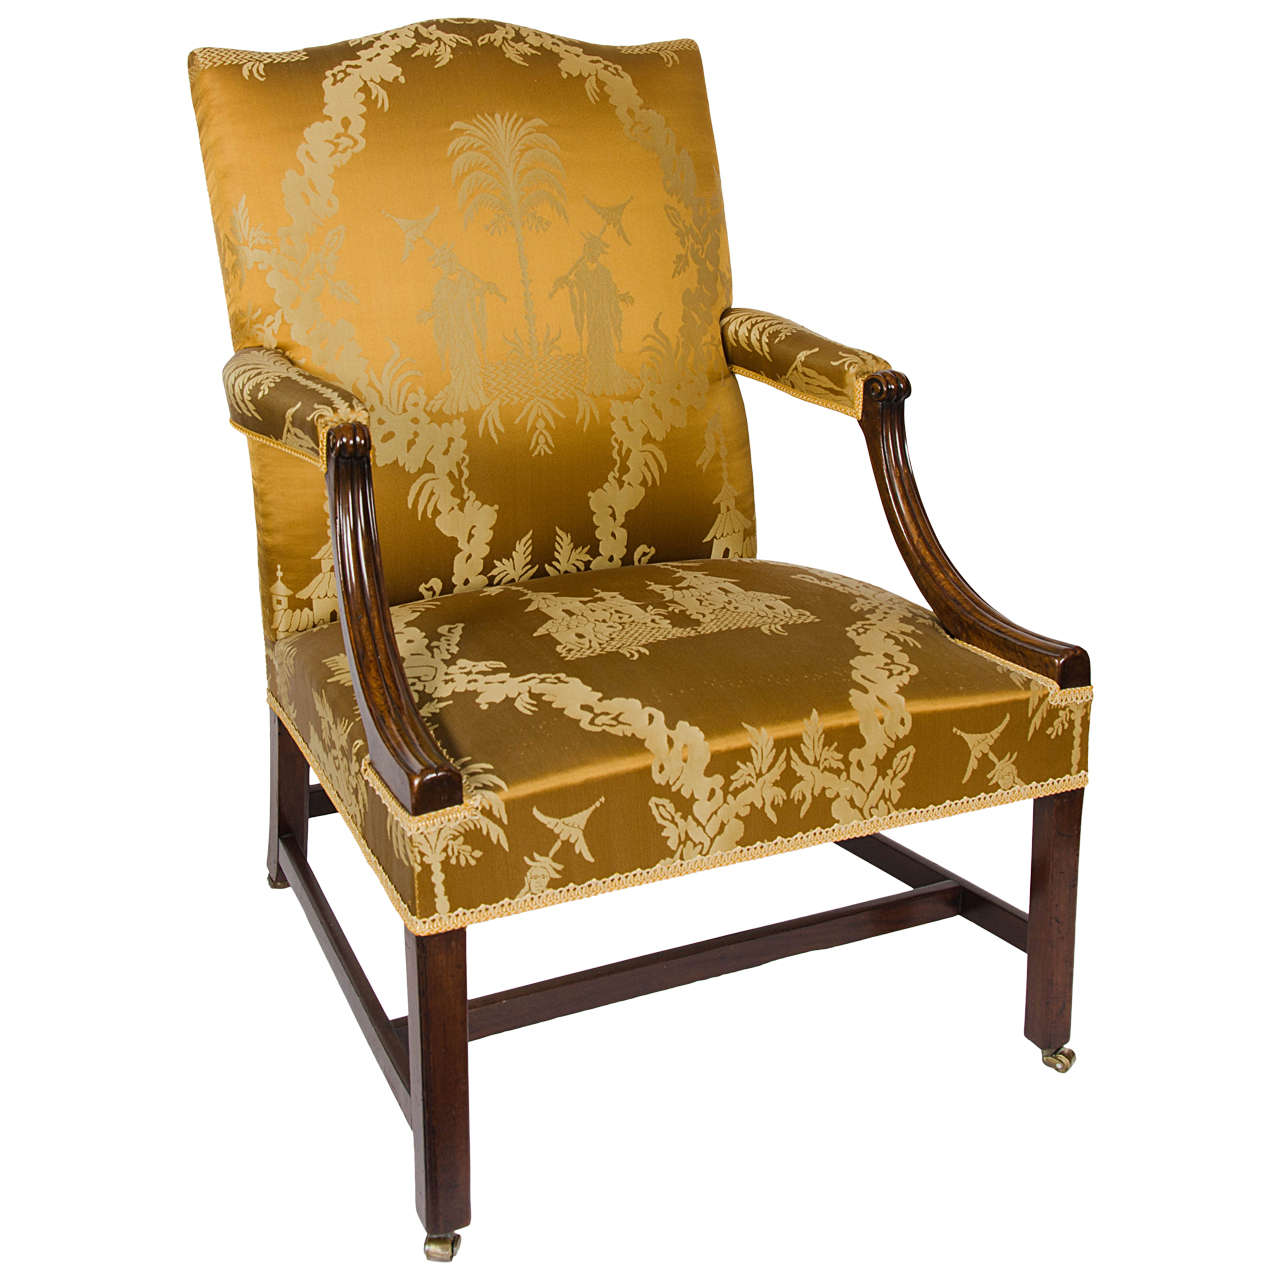 18th Century Mahogany Gainsborough Chair With Chinoiserie Silk On Castors For Sale At 1stdibs